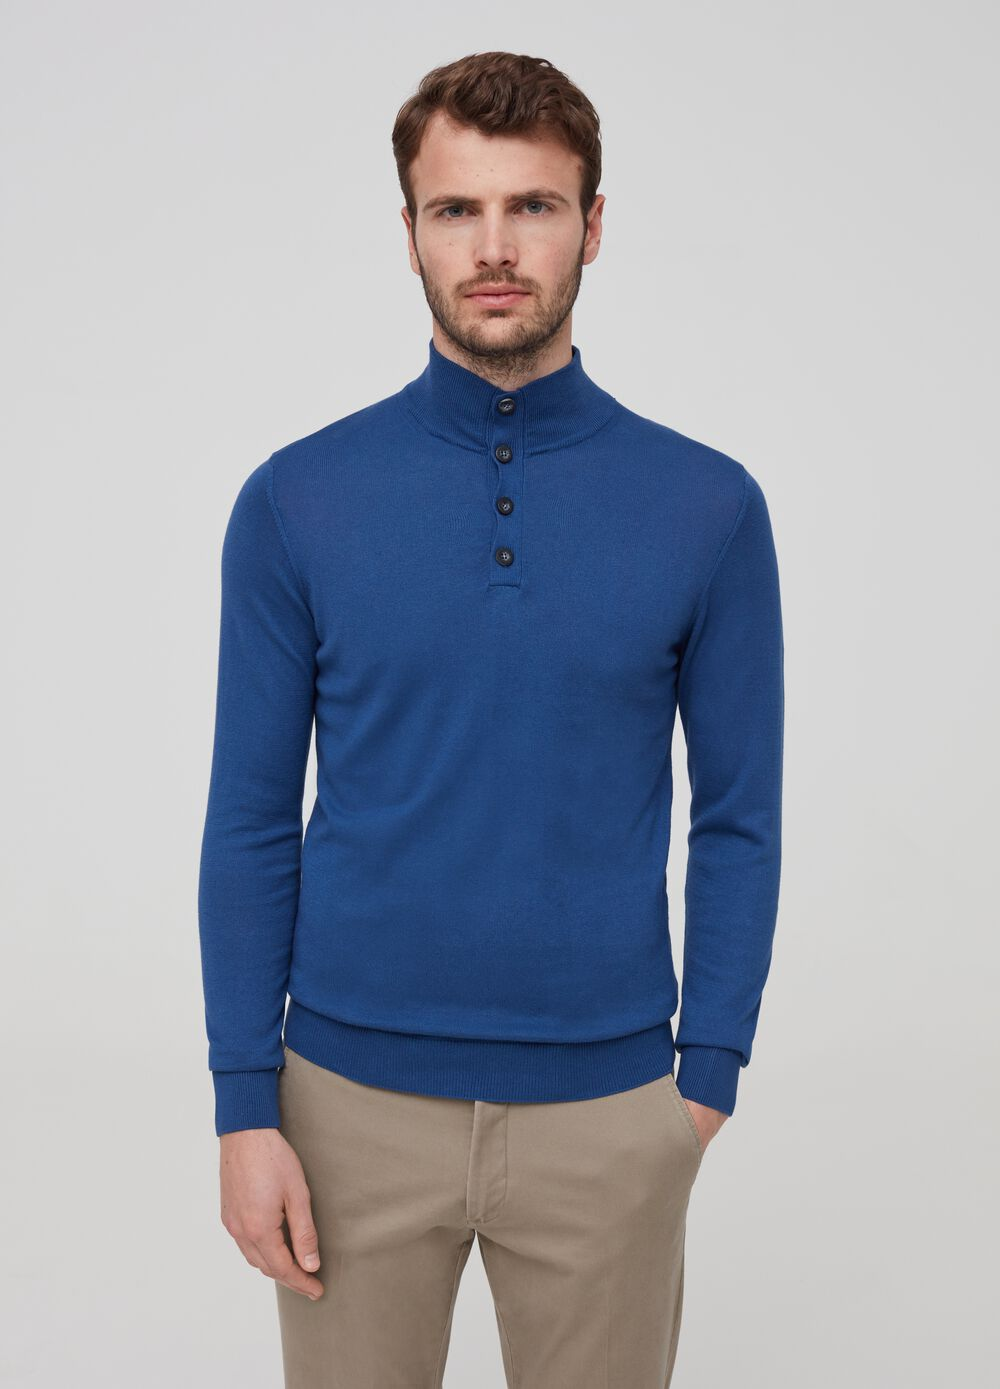 Cotton and silk pullover with high neck